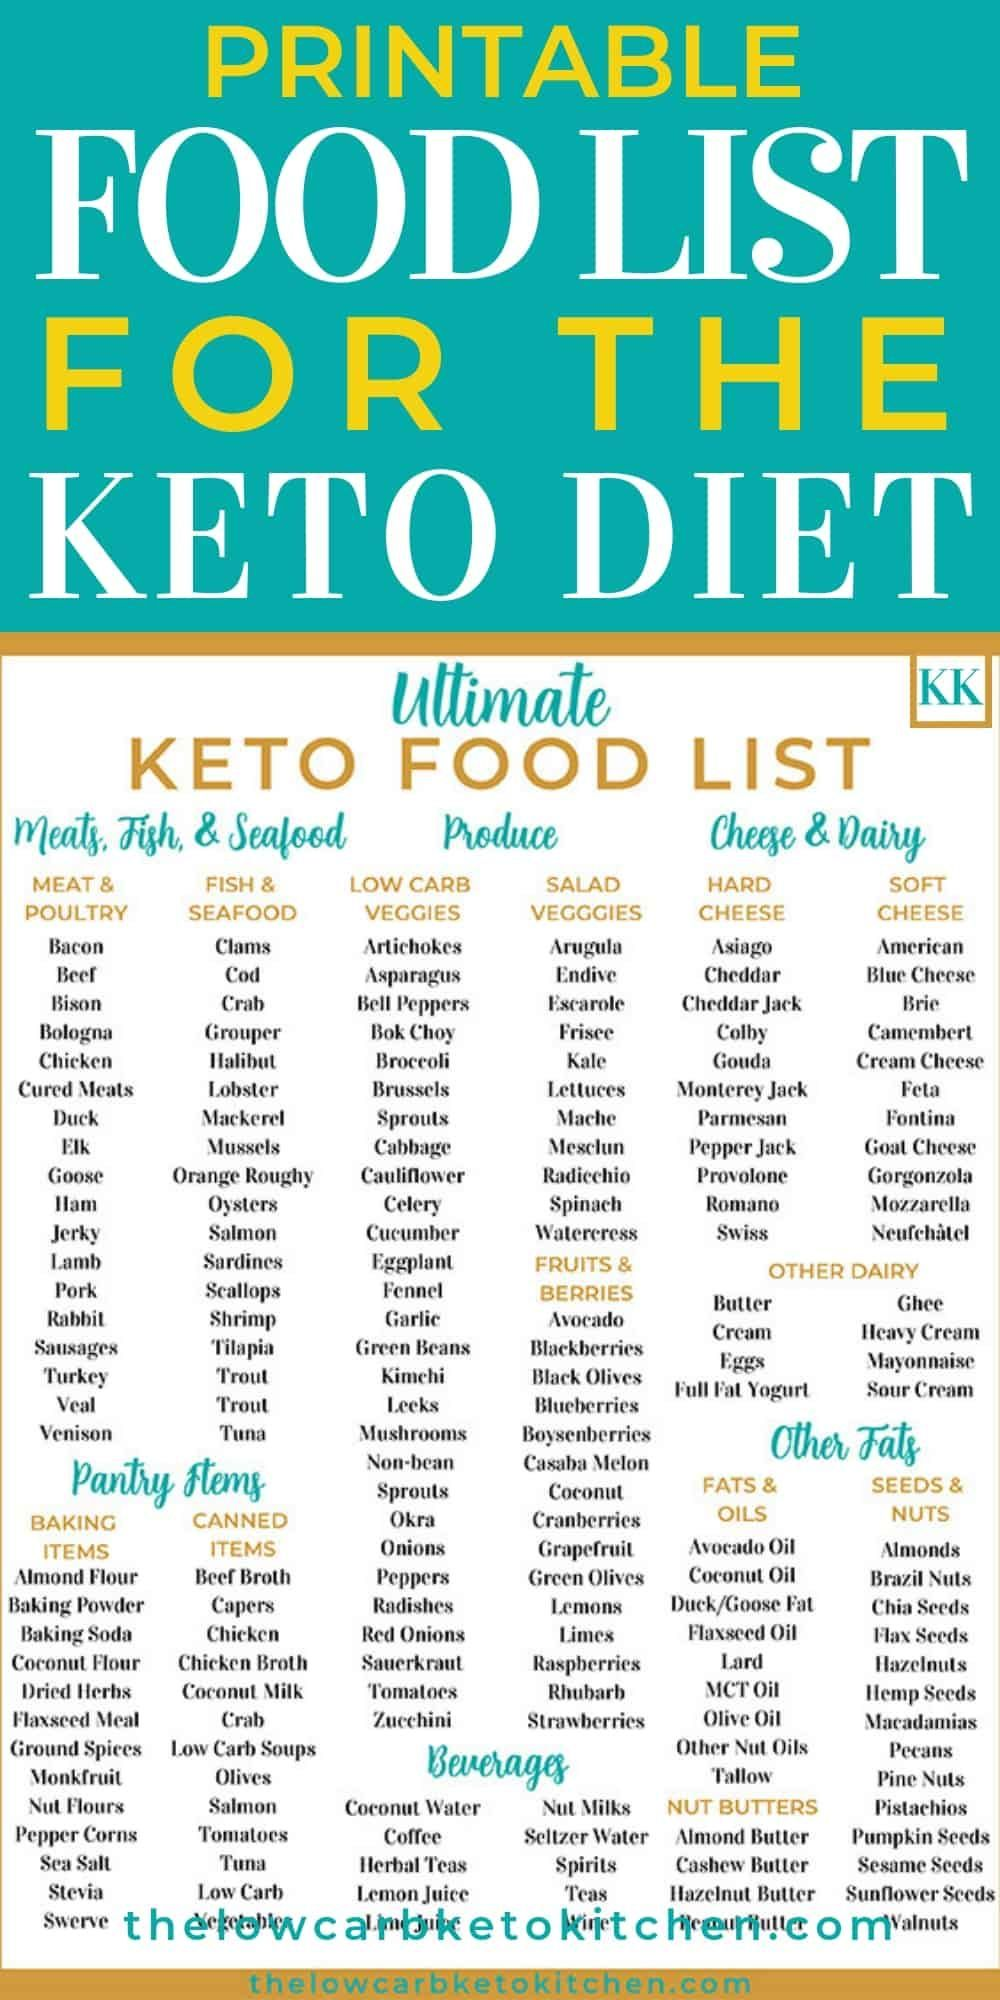 The Ultimate Keto Food List with Printable in 2020 Keto